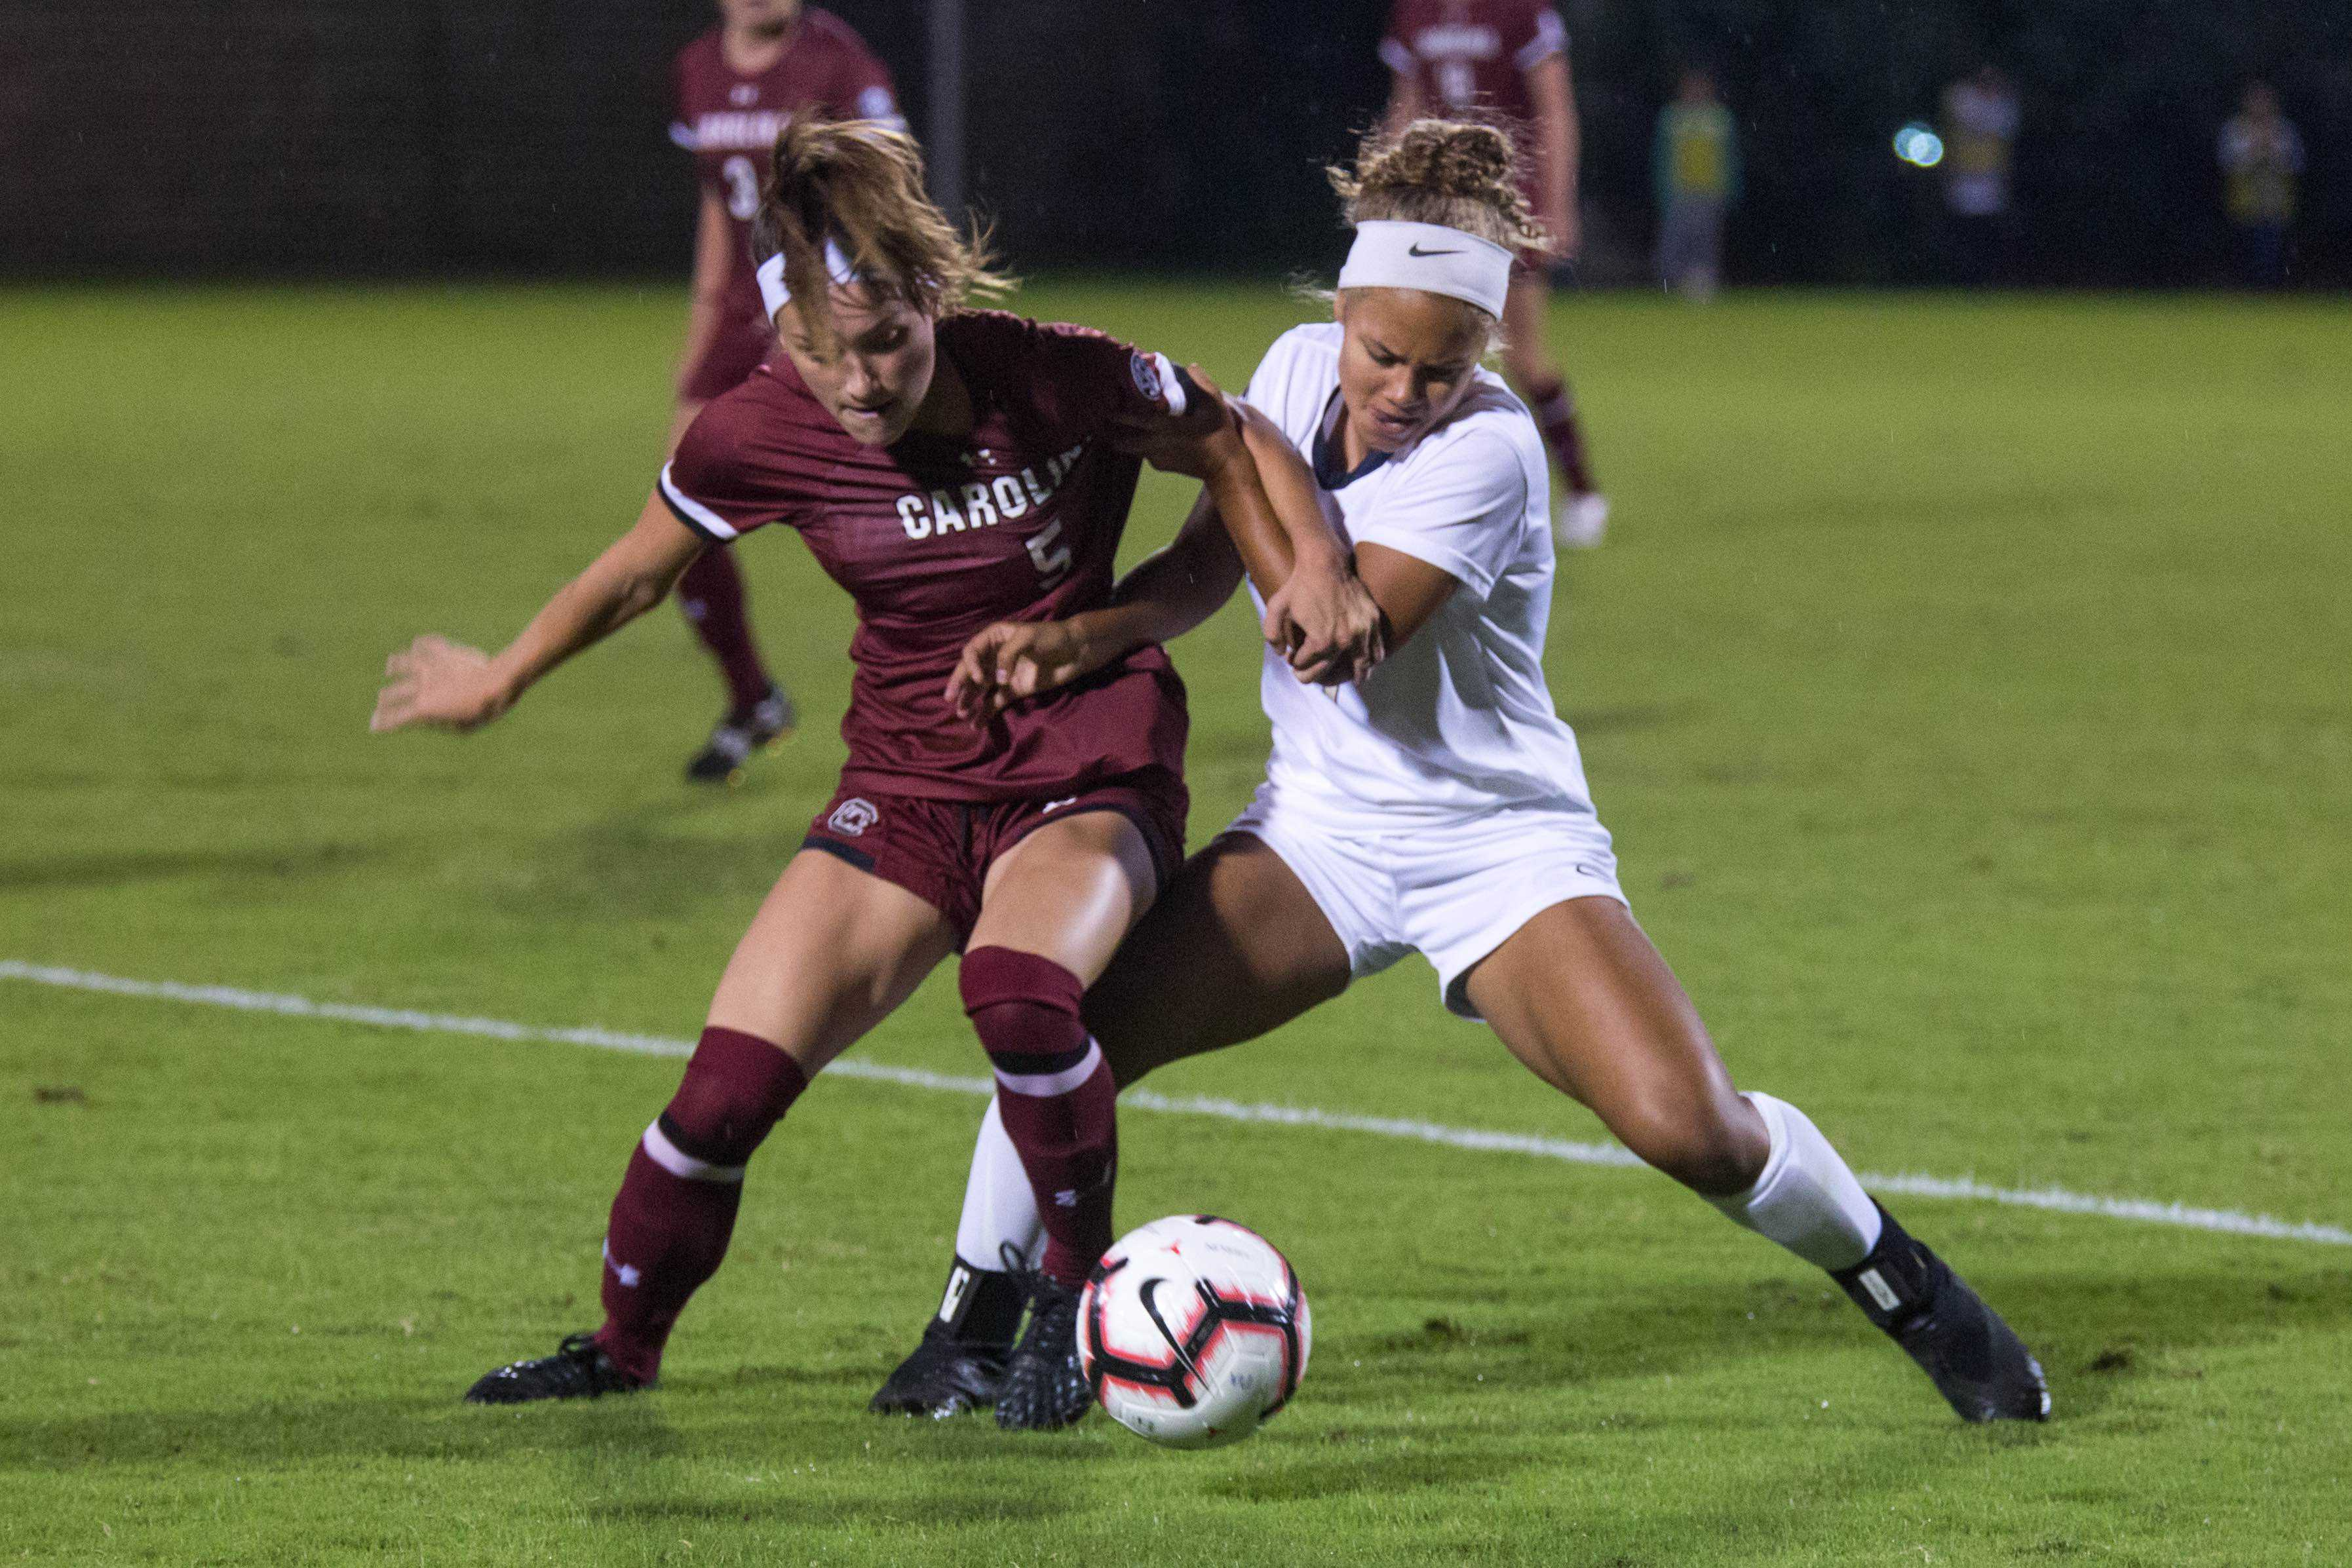 Vanderbilt Soccer stays put in rankings, moves into top 15 in RPI